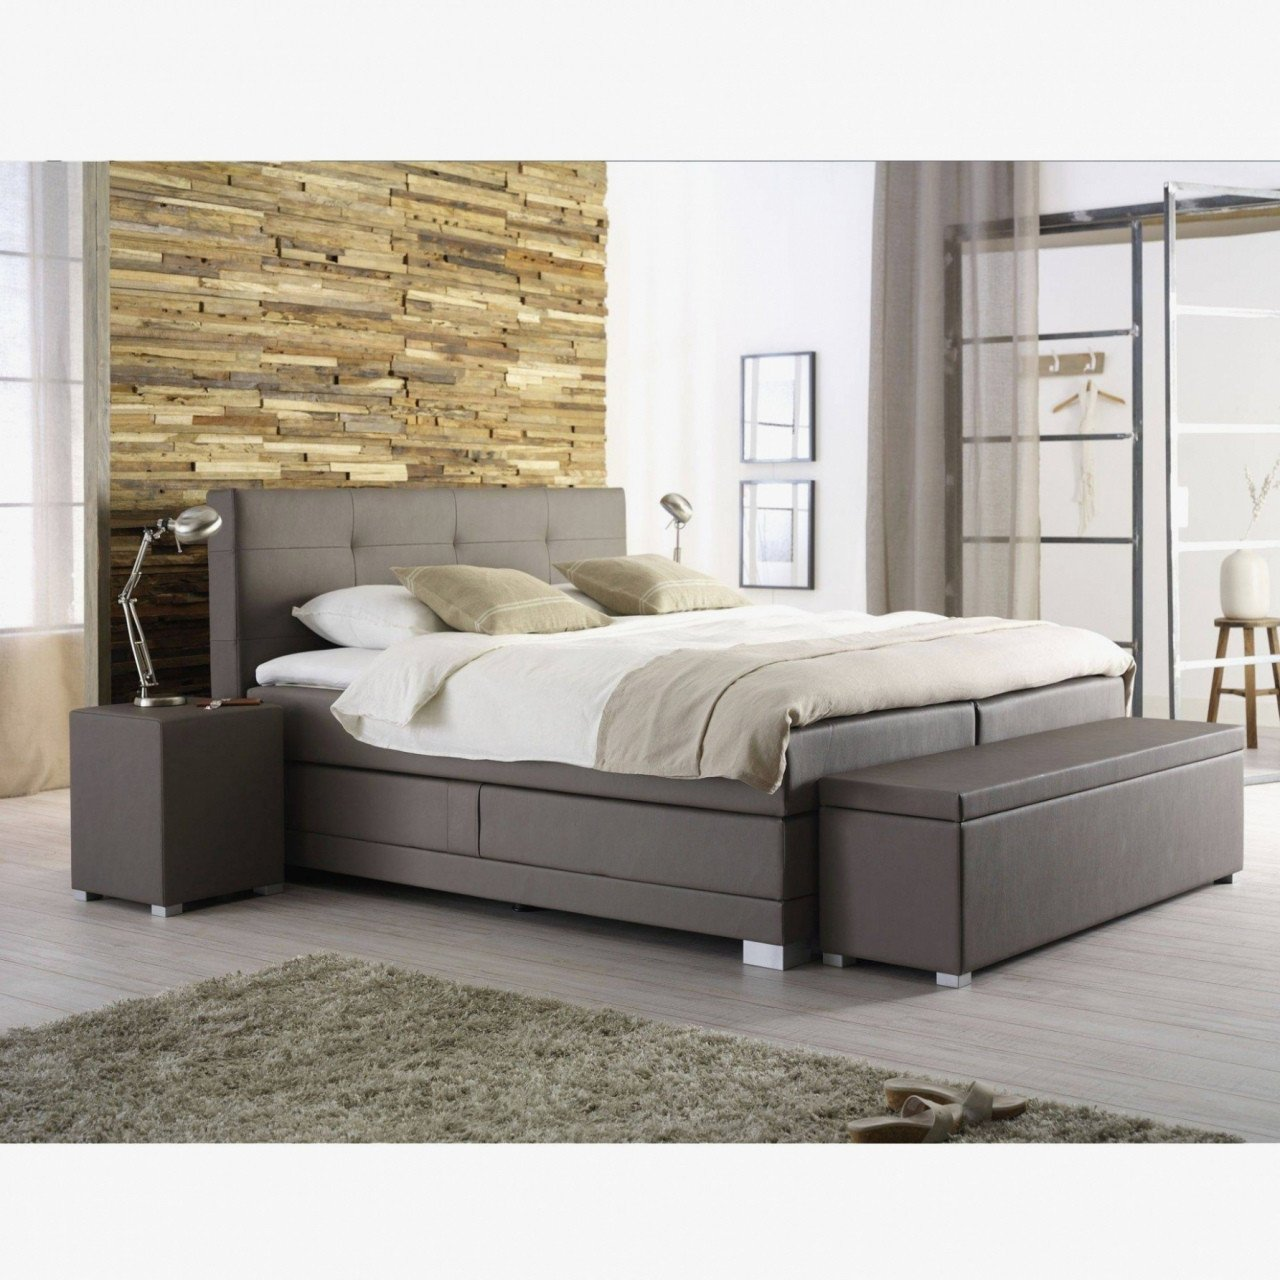 Twin Trundle Bedroom Set Best Of Bed with Drawers — Procura Home Blog